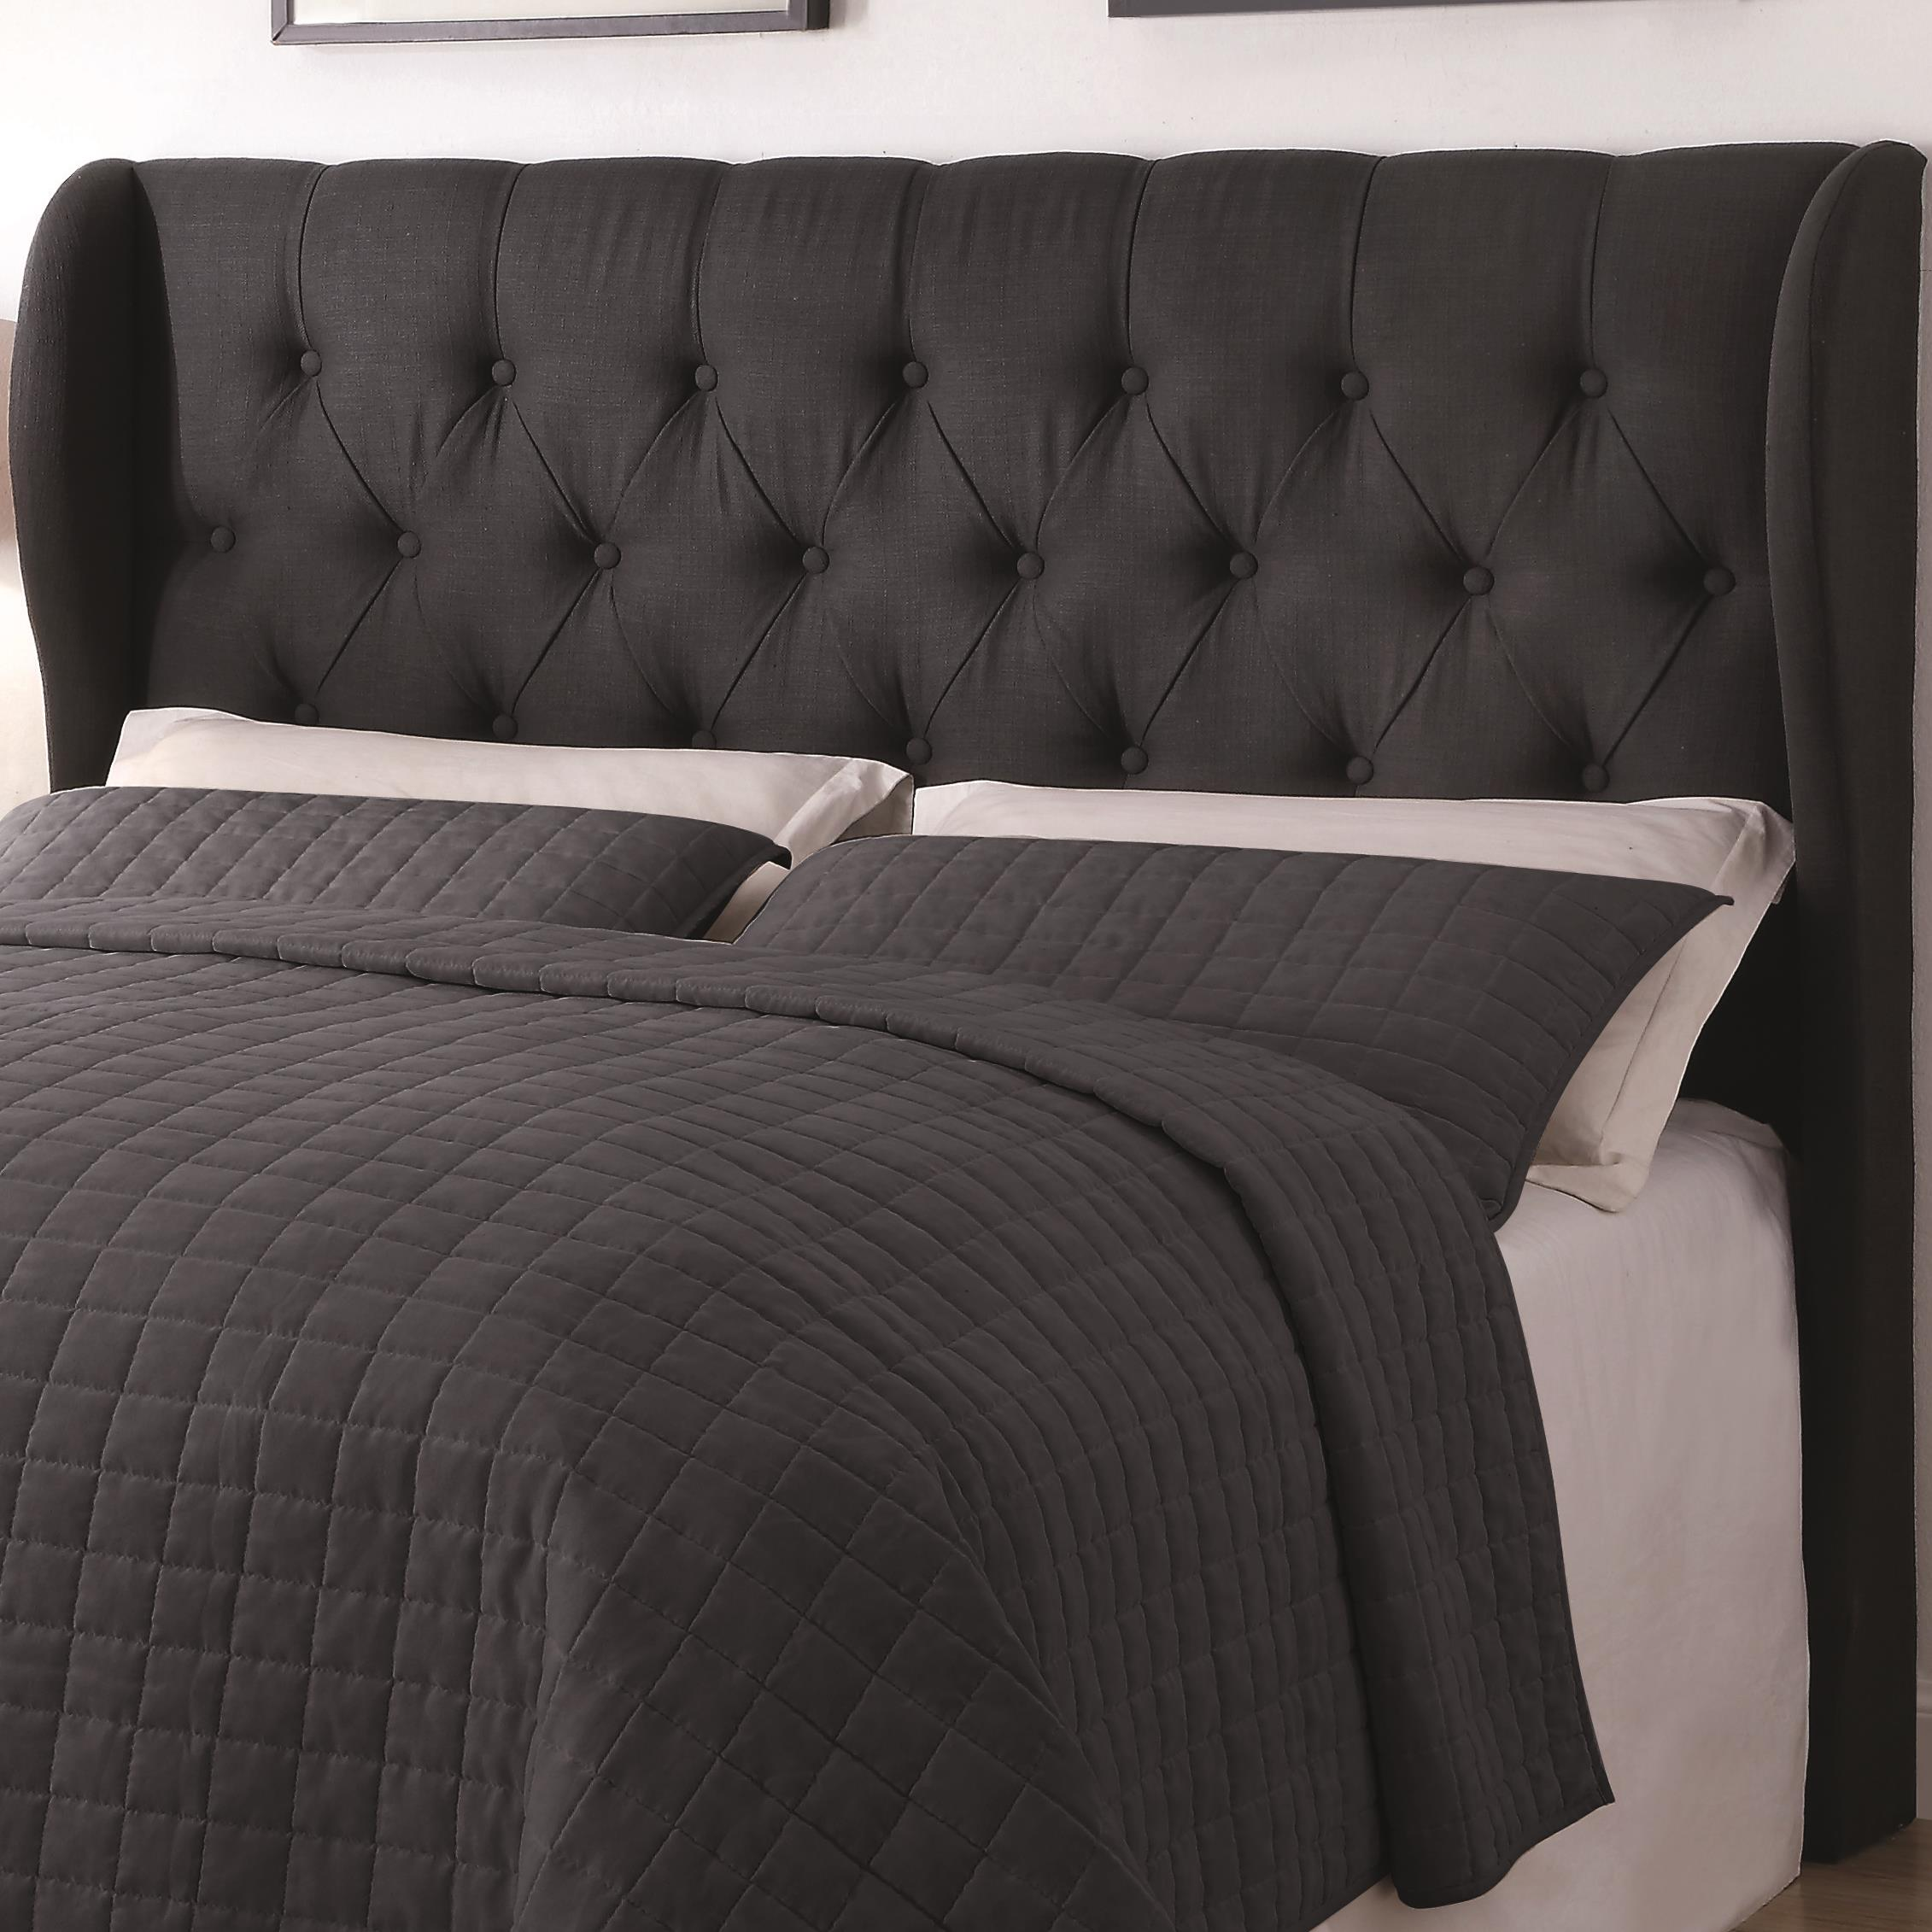 Upholstered Beds Queen/ Full Murrieta Headboard by Coaster at Suburban Furniture